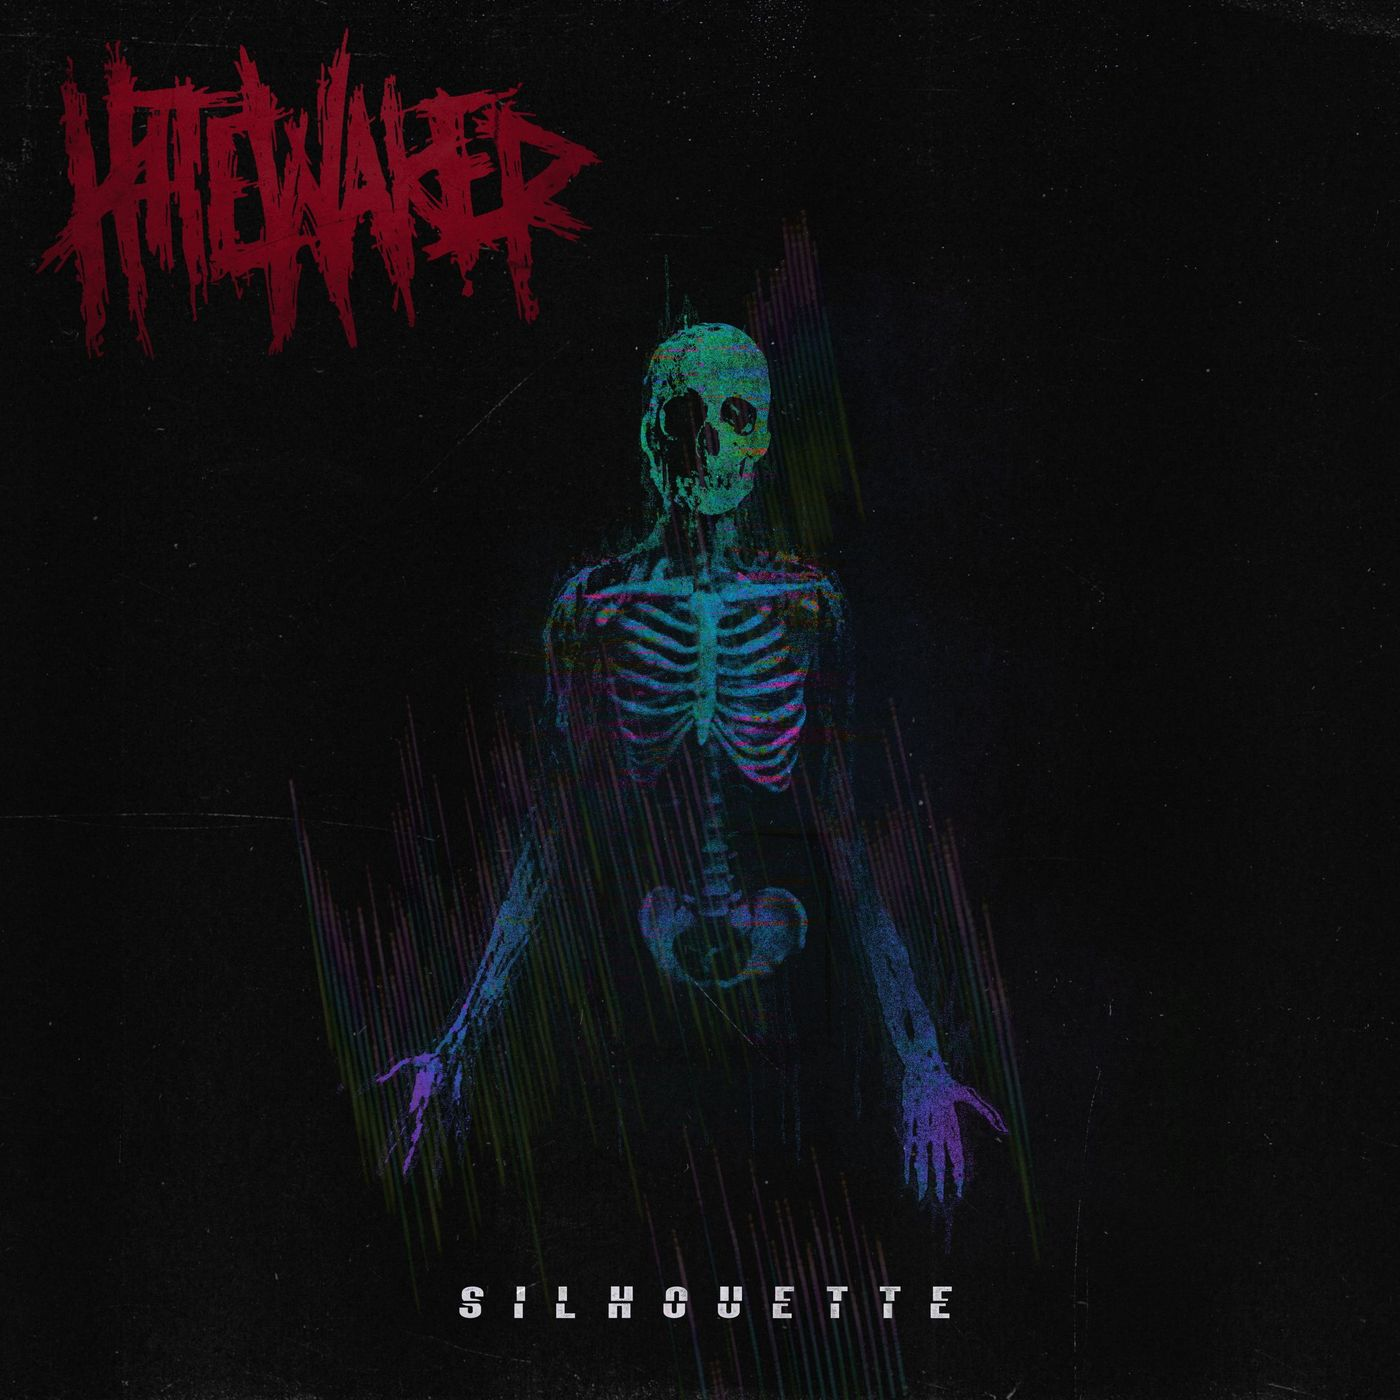 HateWaker - Silhouette [single] (2021)